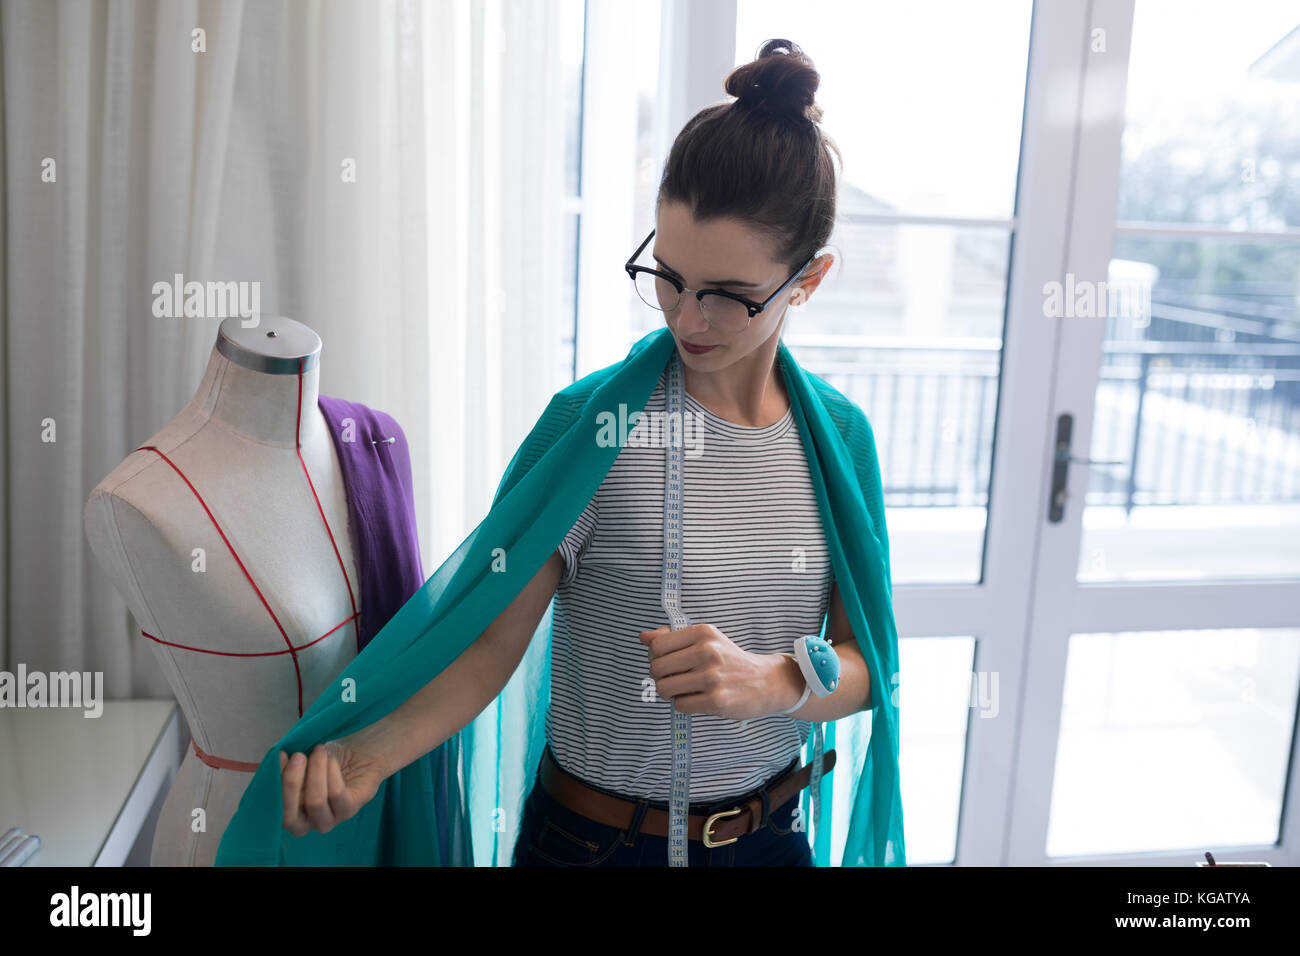 Fashion Designer Designing A Fabric Textile At Home Stock Photo Alamy